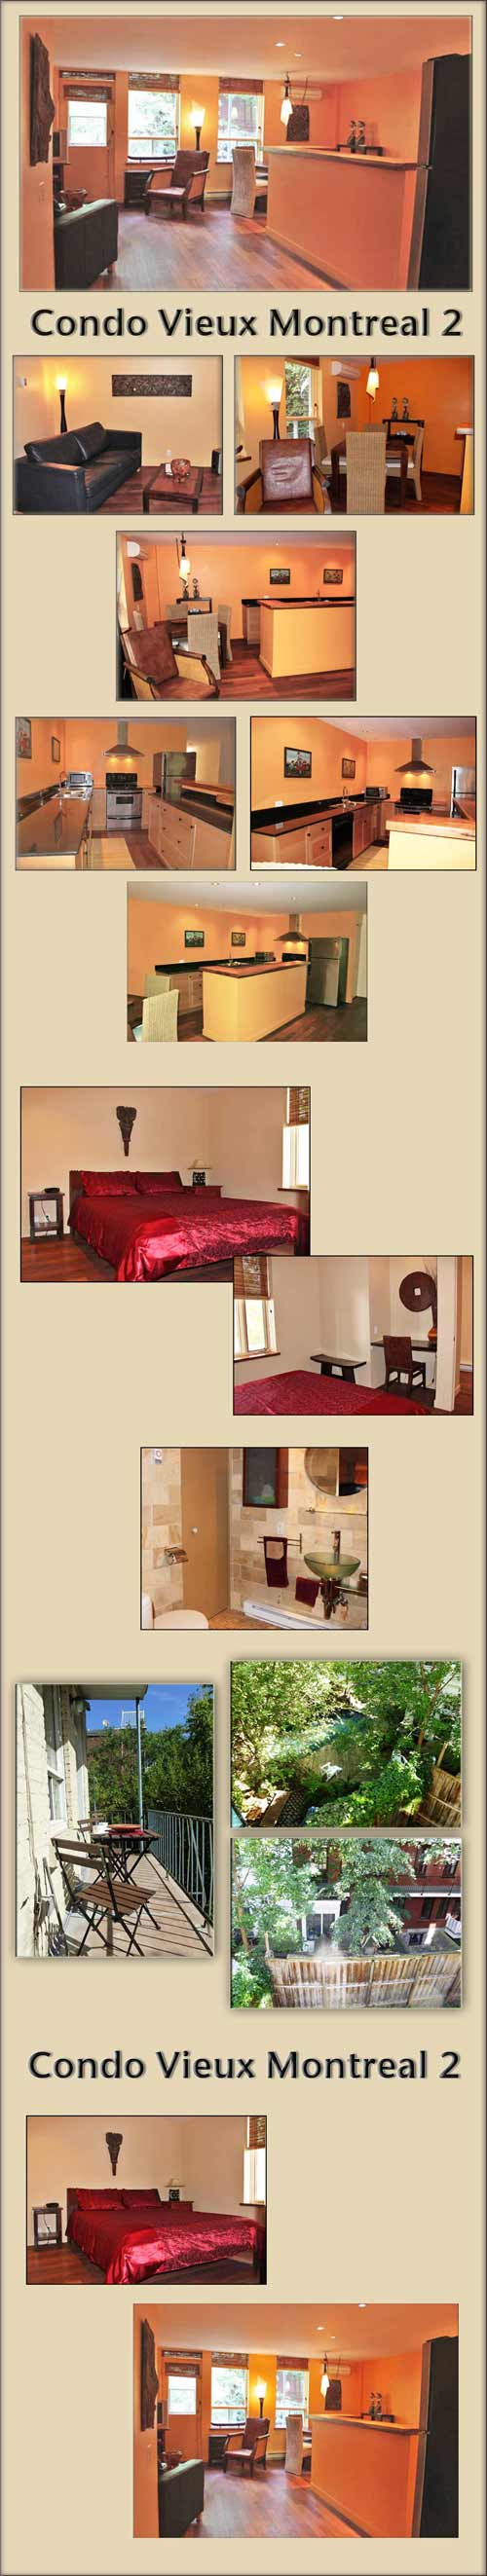 furnished Old Montreal condominium - vacation rental and for an extended stay